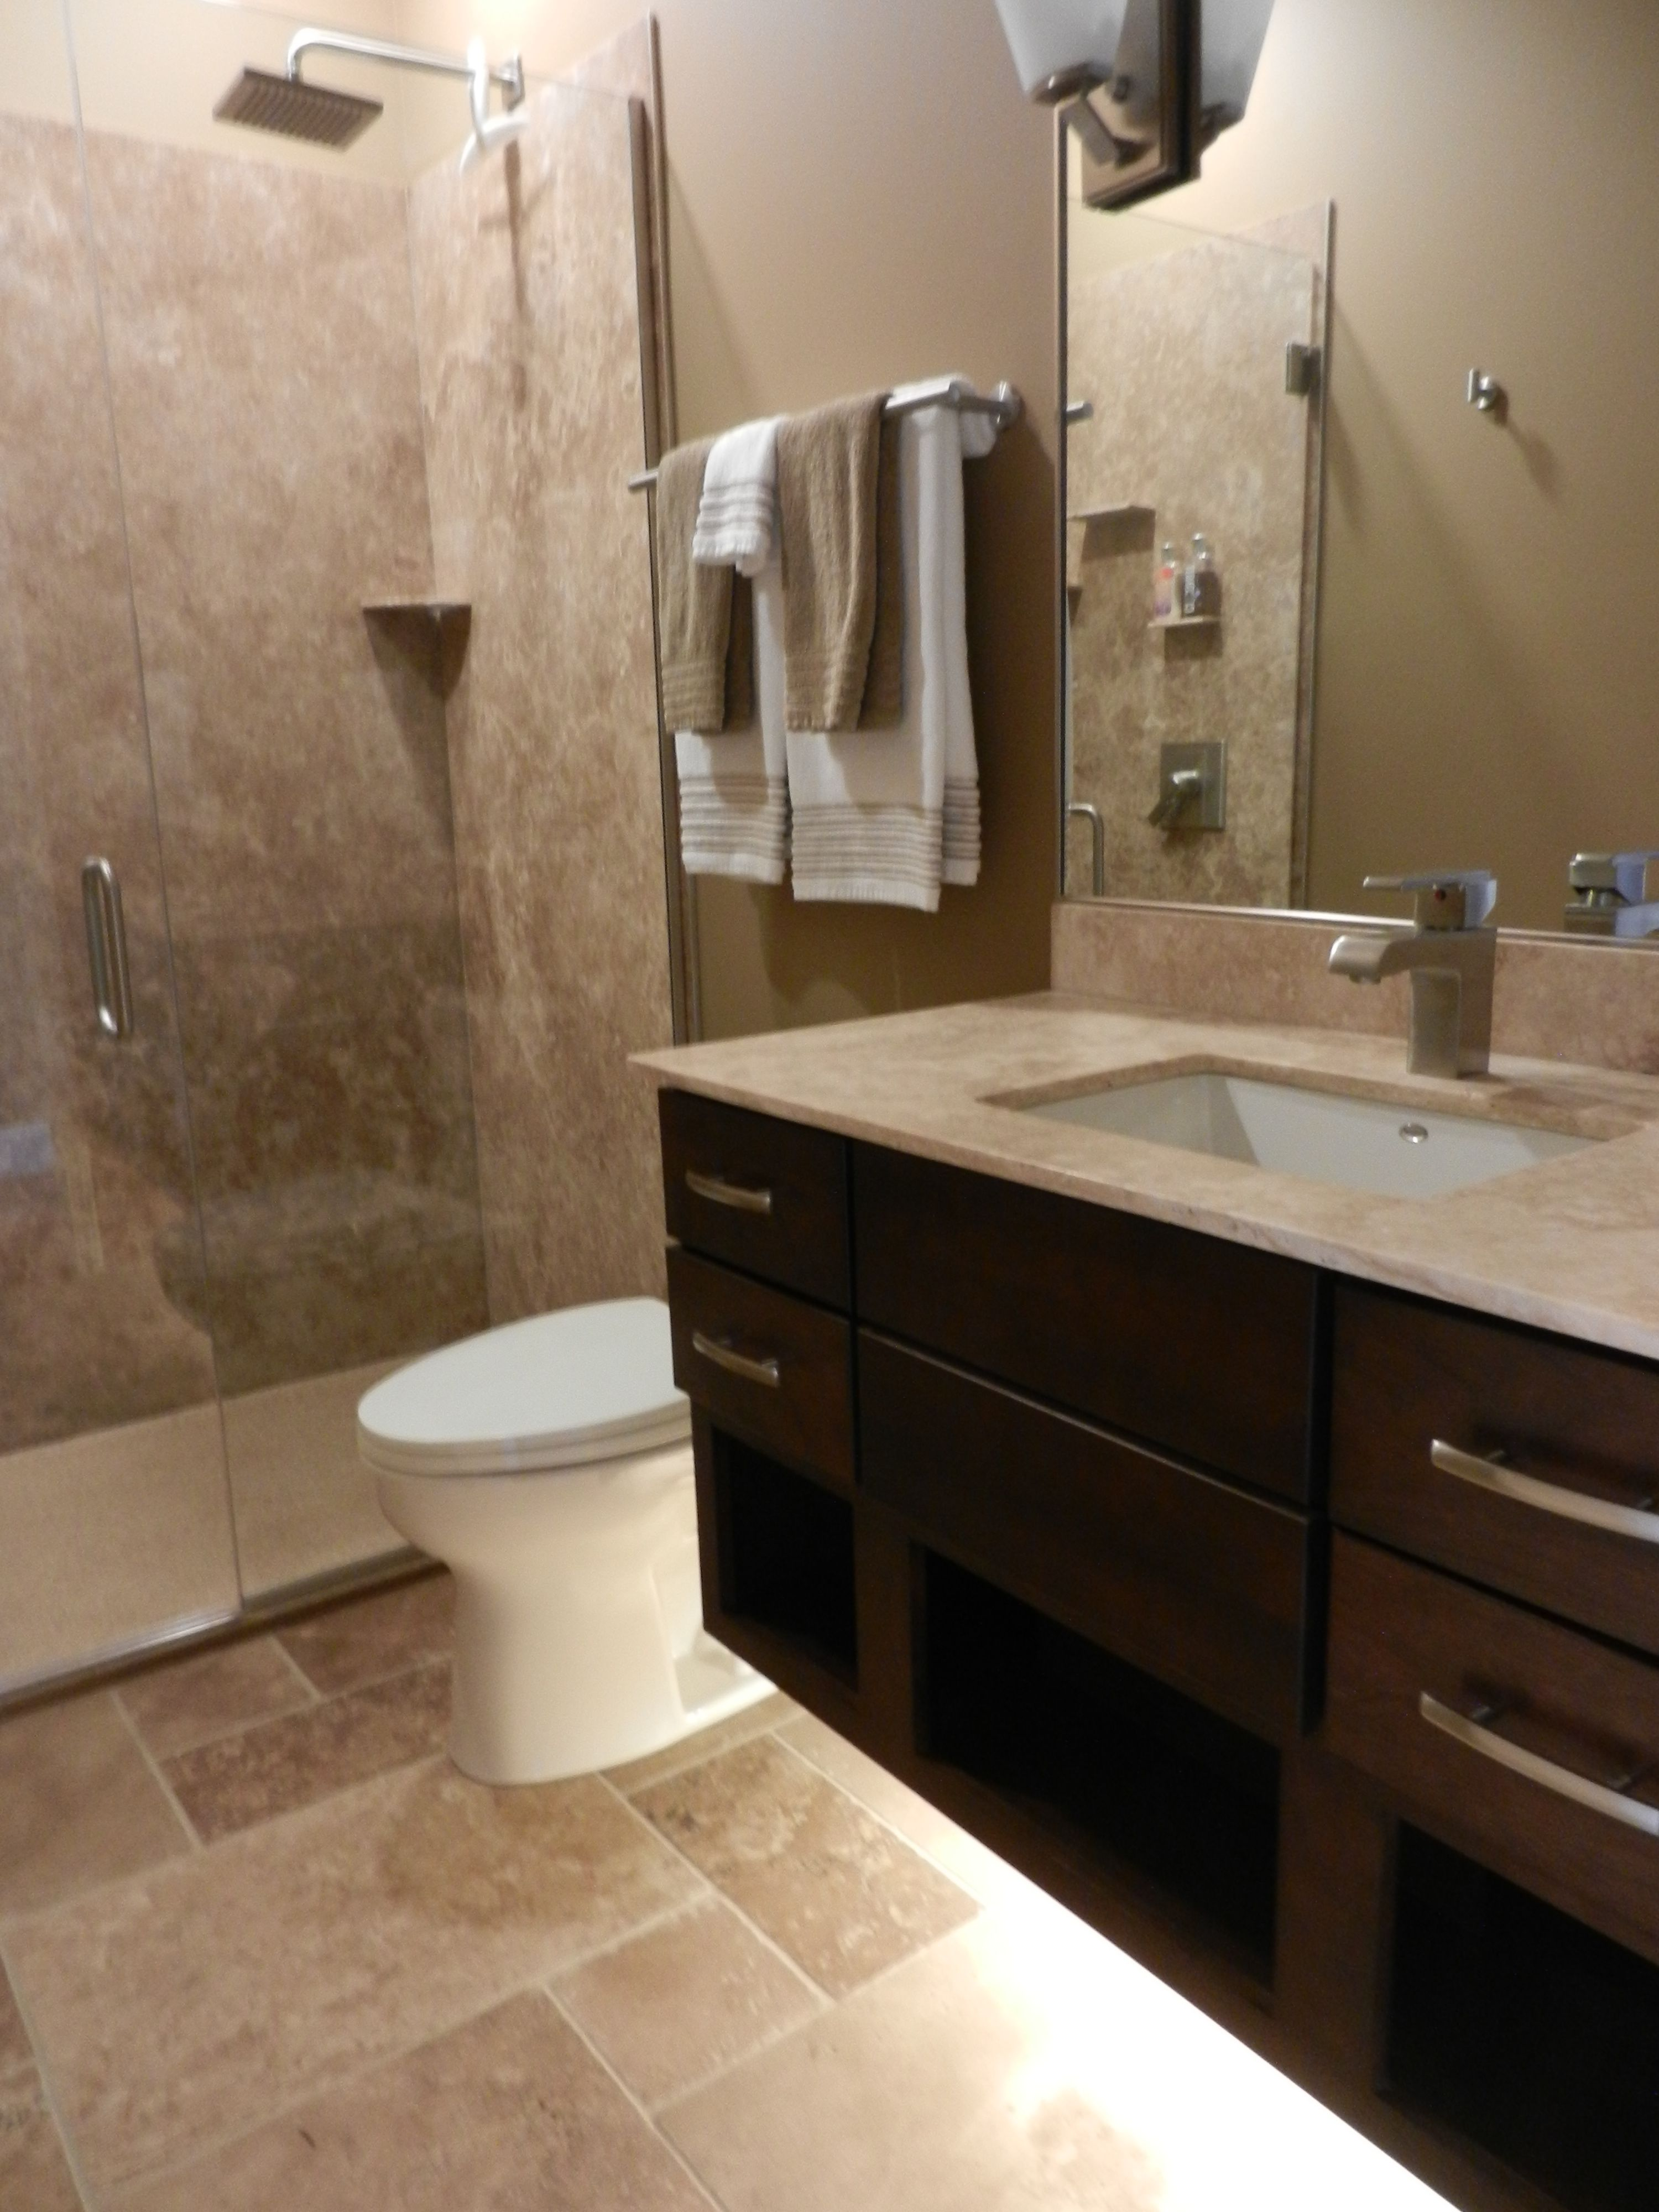 Floating vanity with under cabinet lighting for a modern bathroom